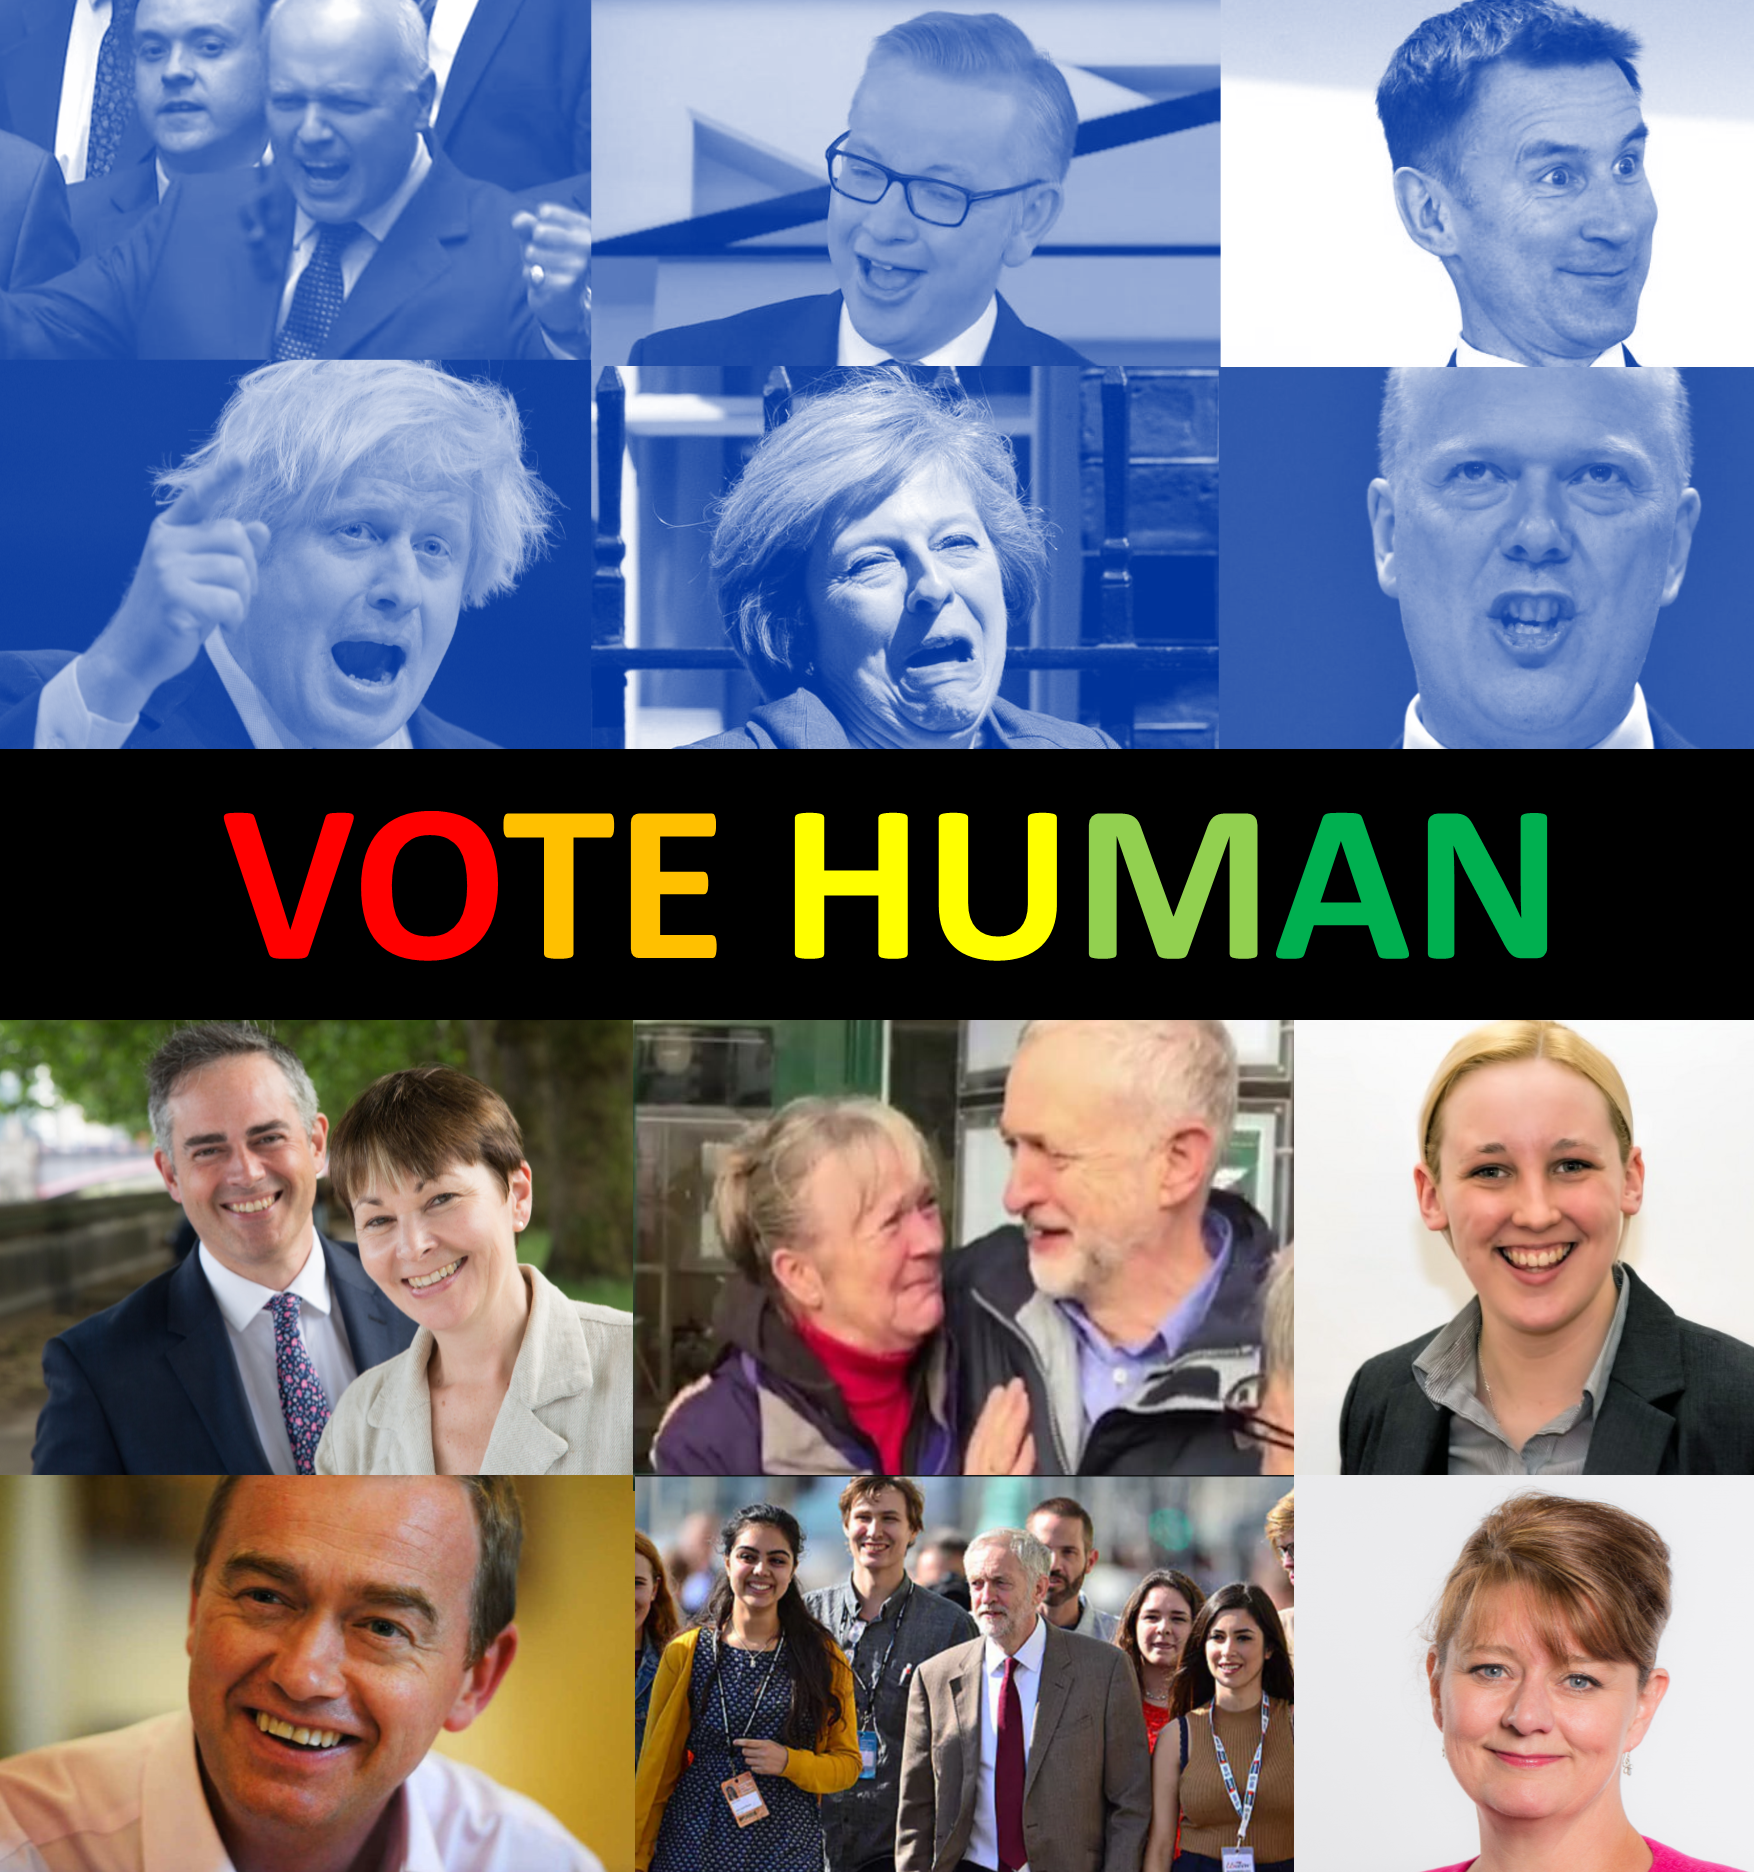 vote_human_FINAL.png